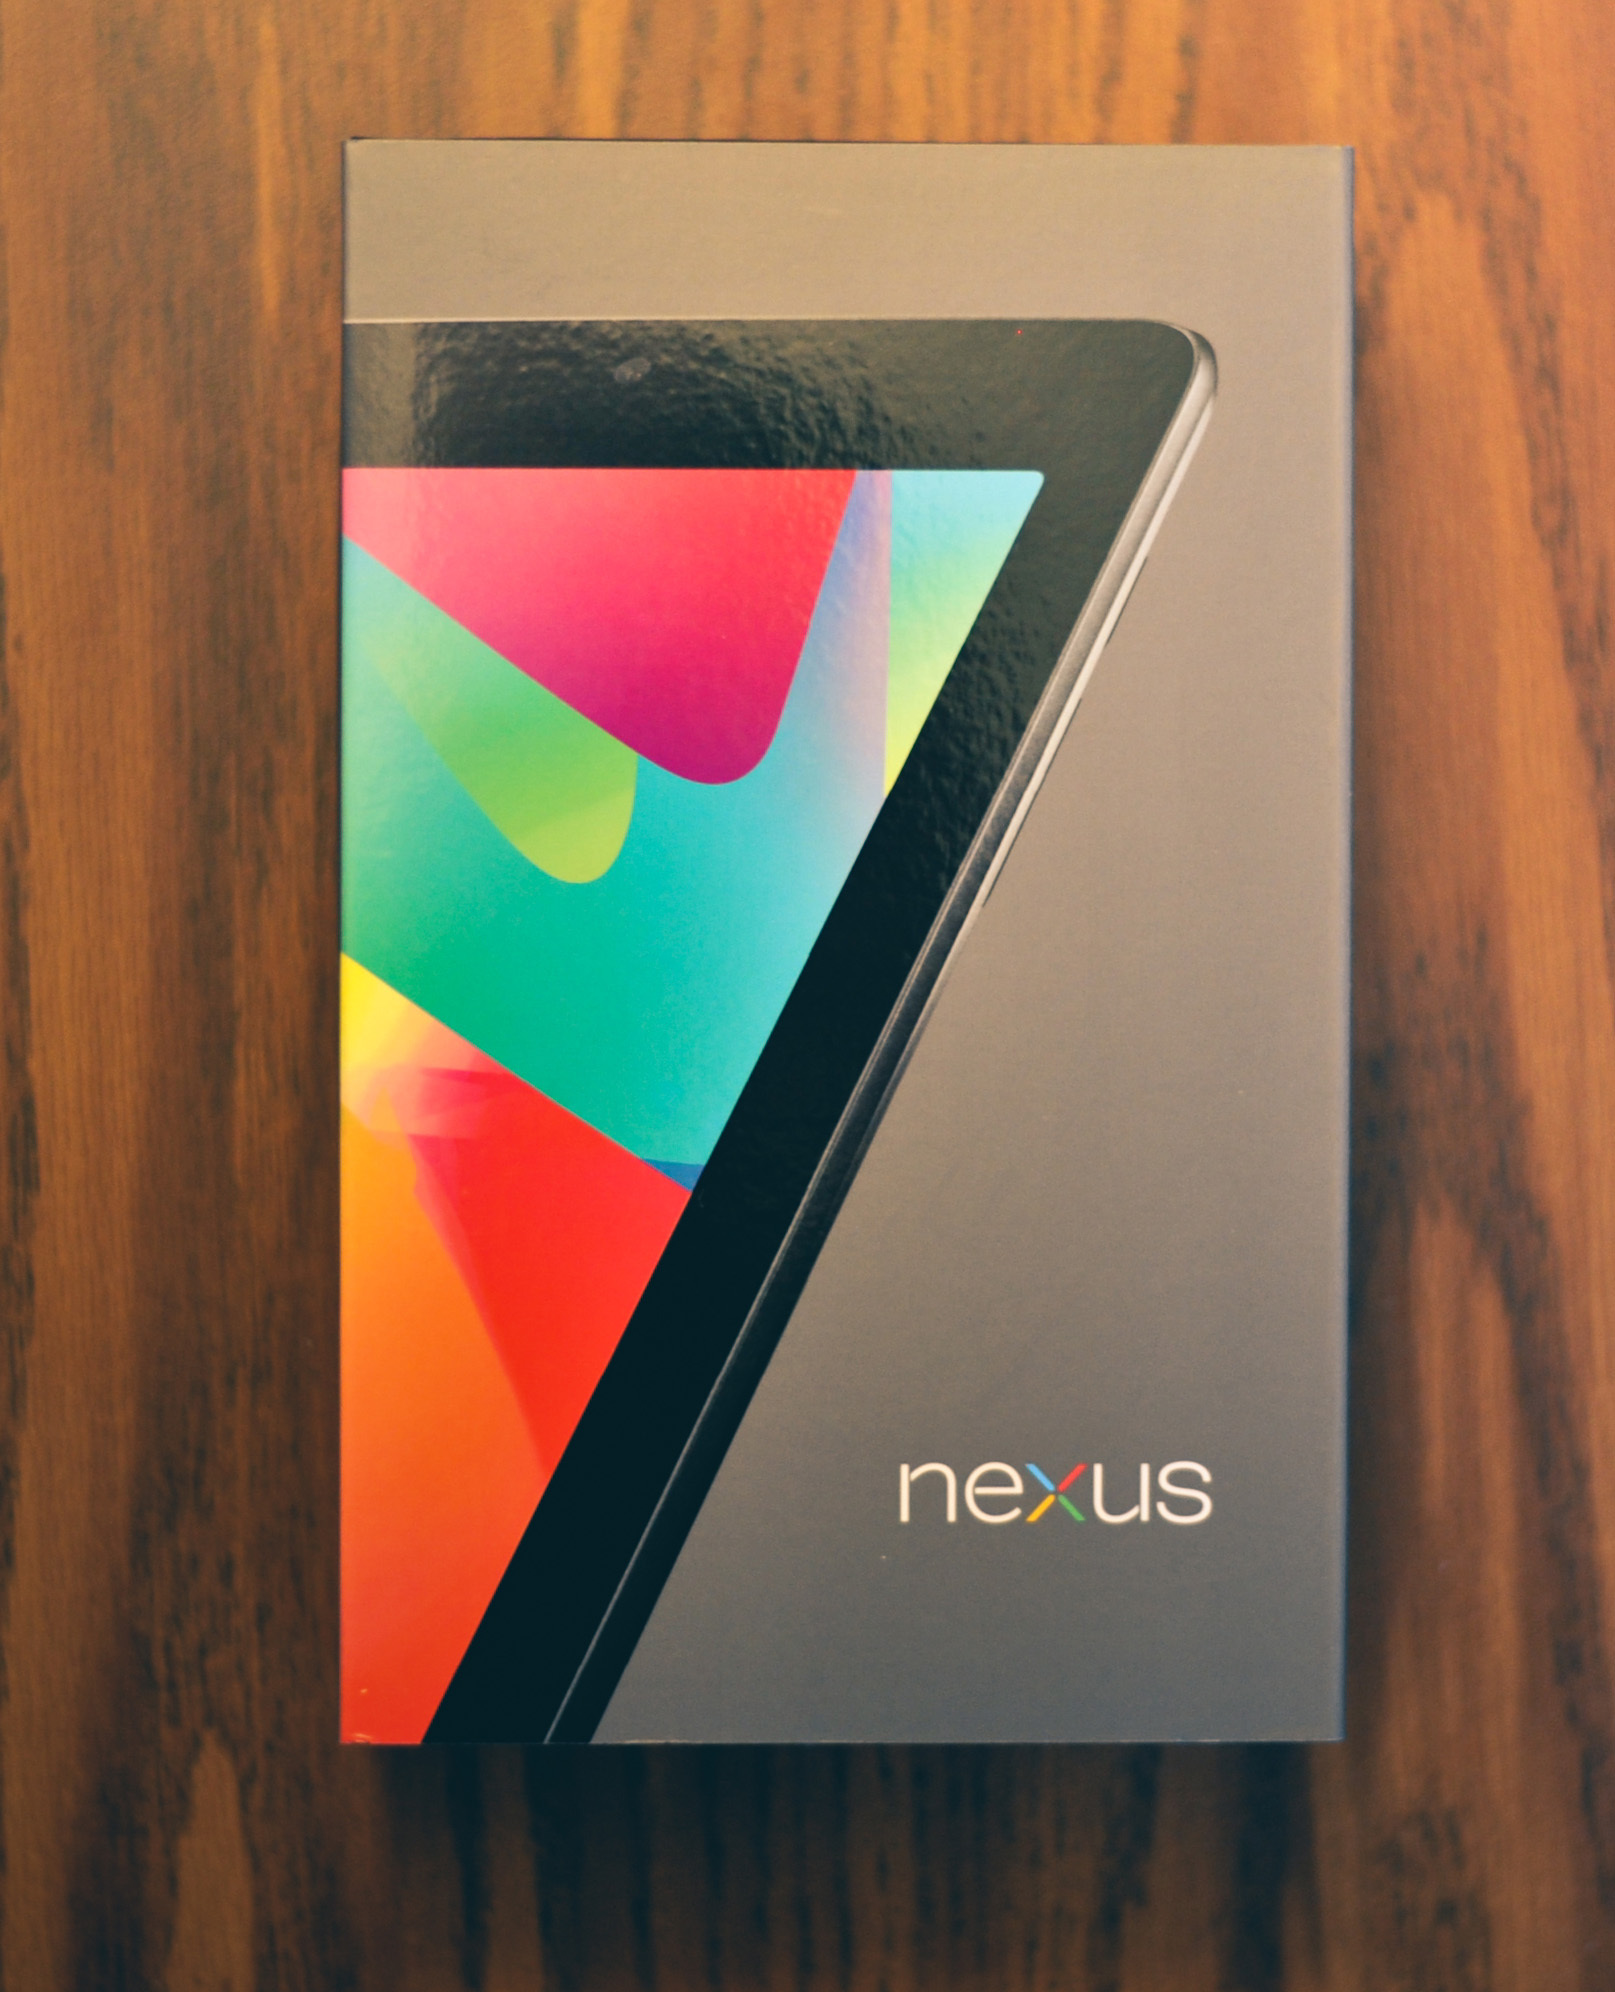 Nexus 7 Box nexus 7 (2012) - wikipedia, the free encyclopedia